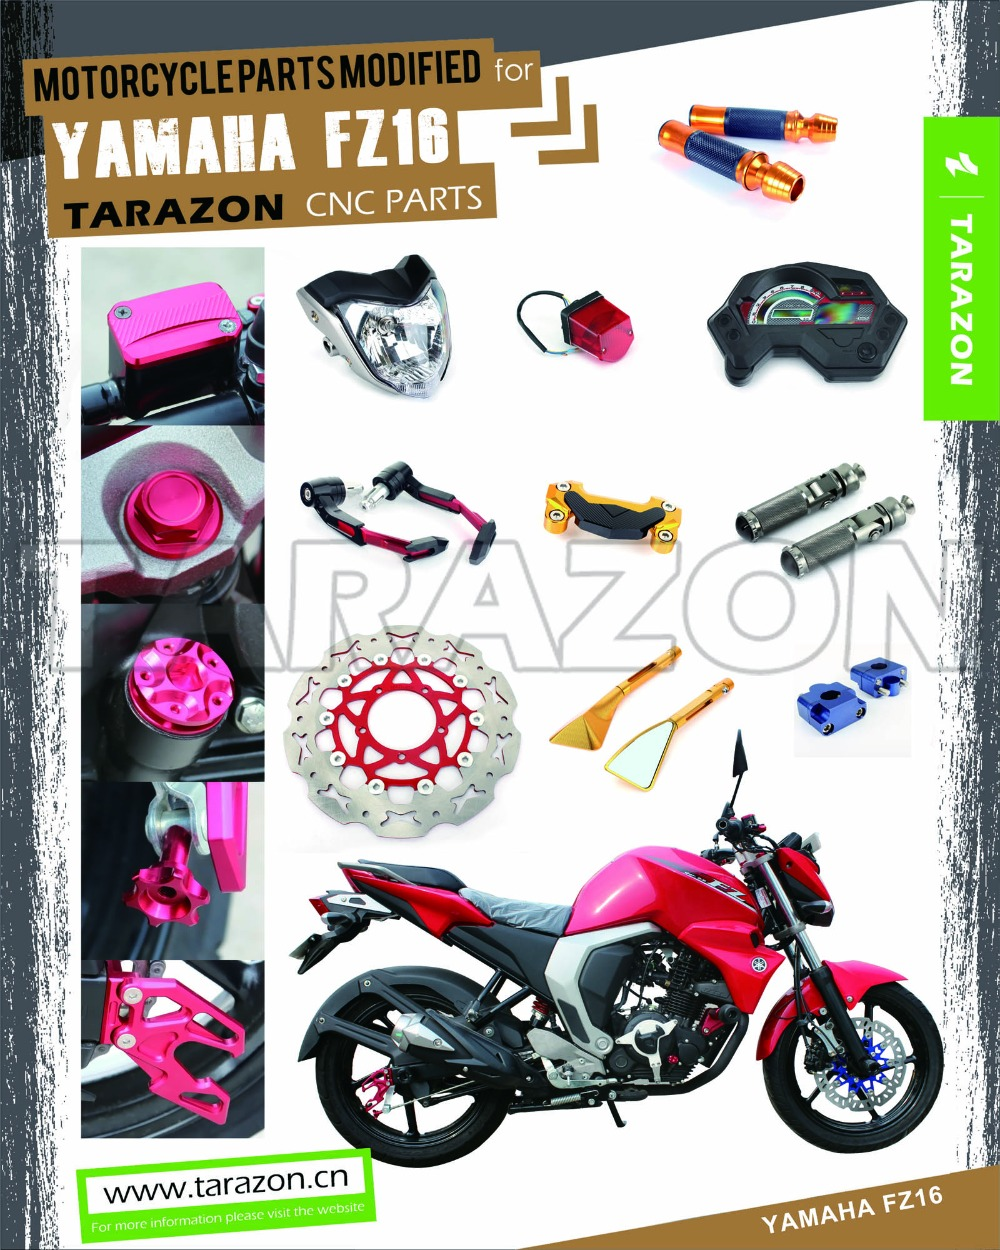 Tarazon motorcycle parts and accessories for yamaha fz 16 for Buy yamaha motorcycle parts